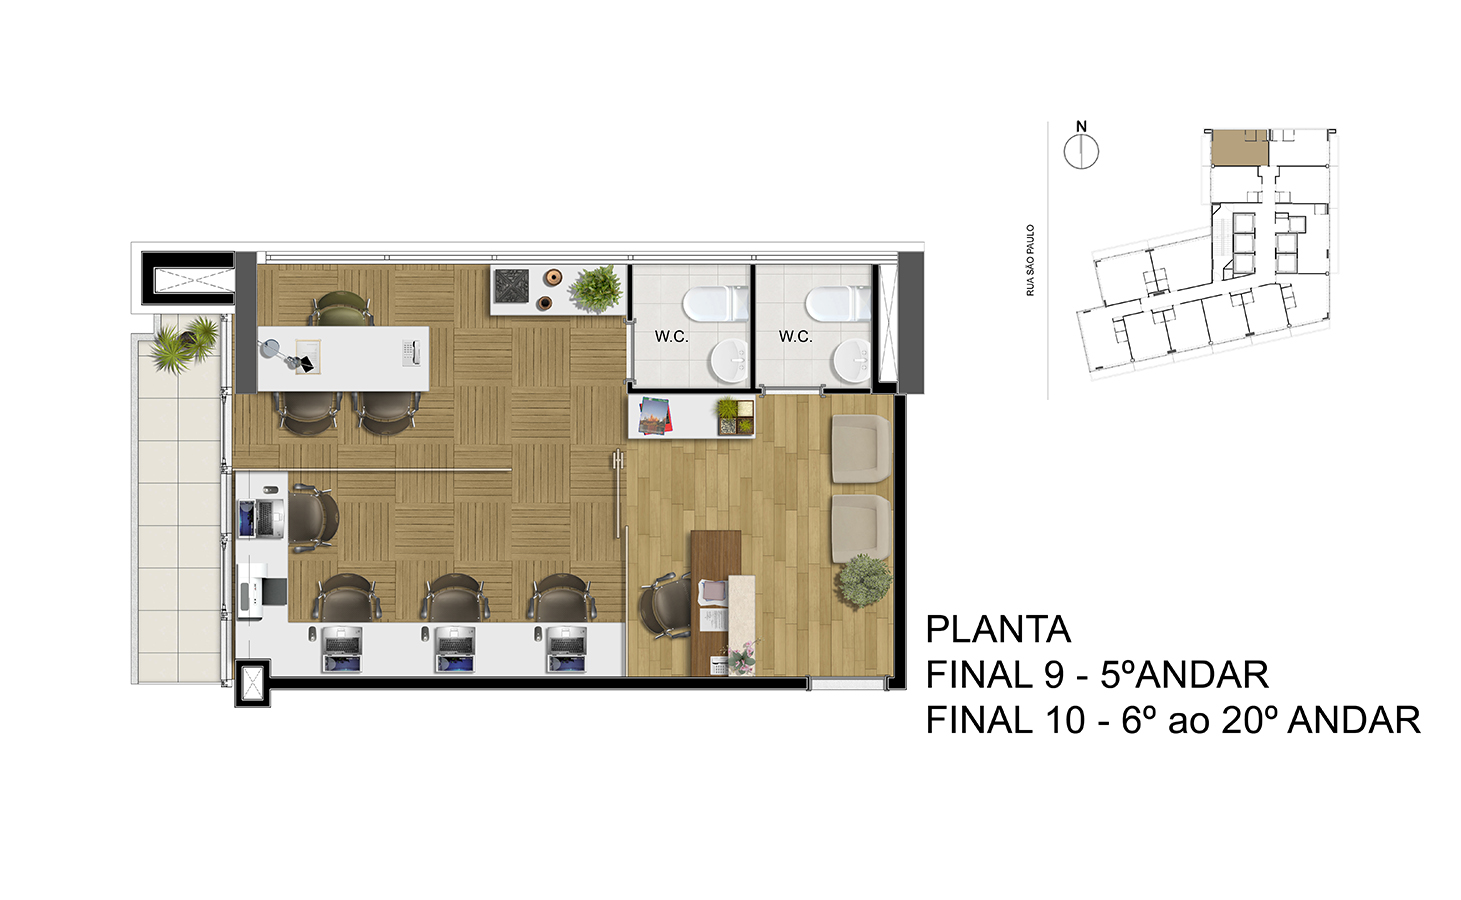 Planta - Final 9 - 5° Andar / Final 10 - 6° ao 20° Andar Manhattan Office Santos